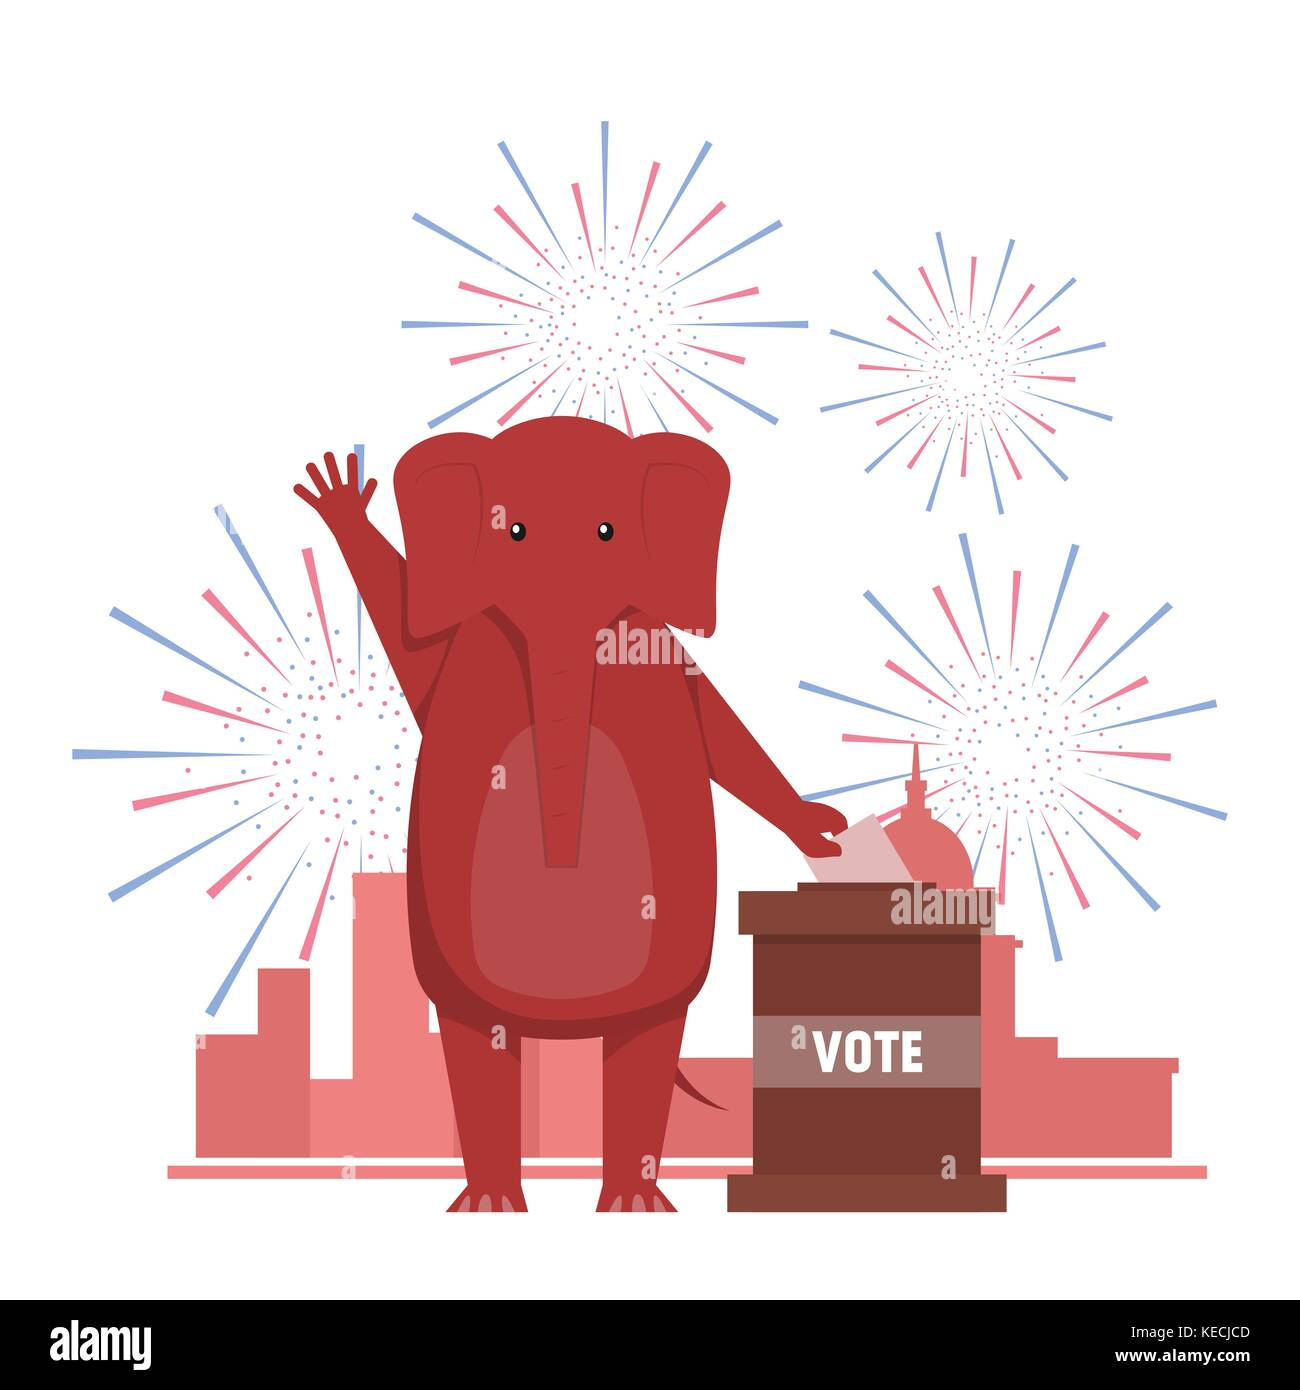 The USA elections result illustration. Democratic donkey and republican elephant contest result. - Stock Image